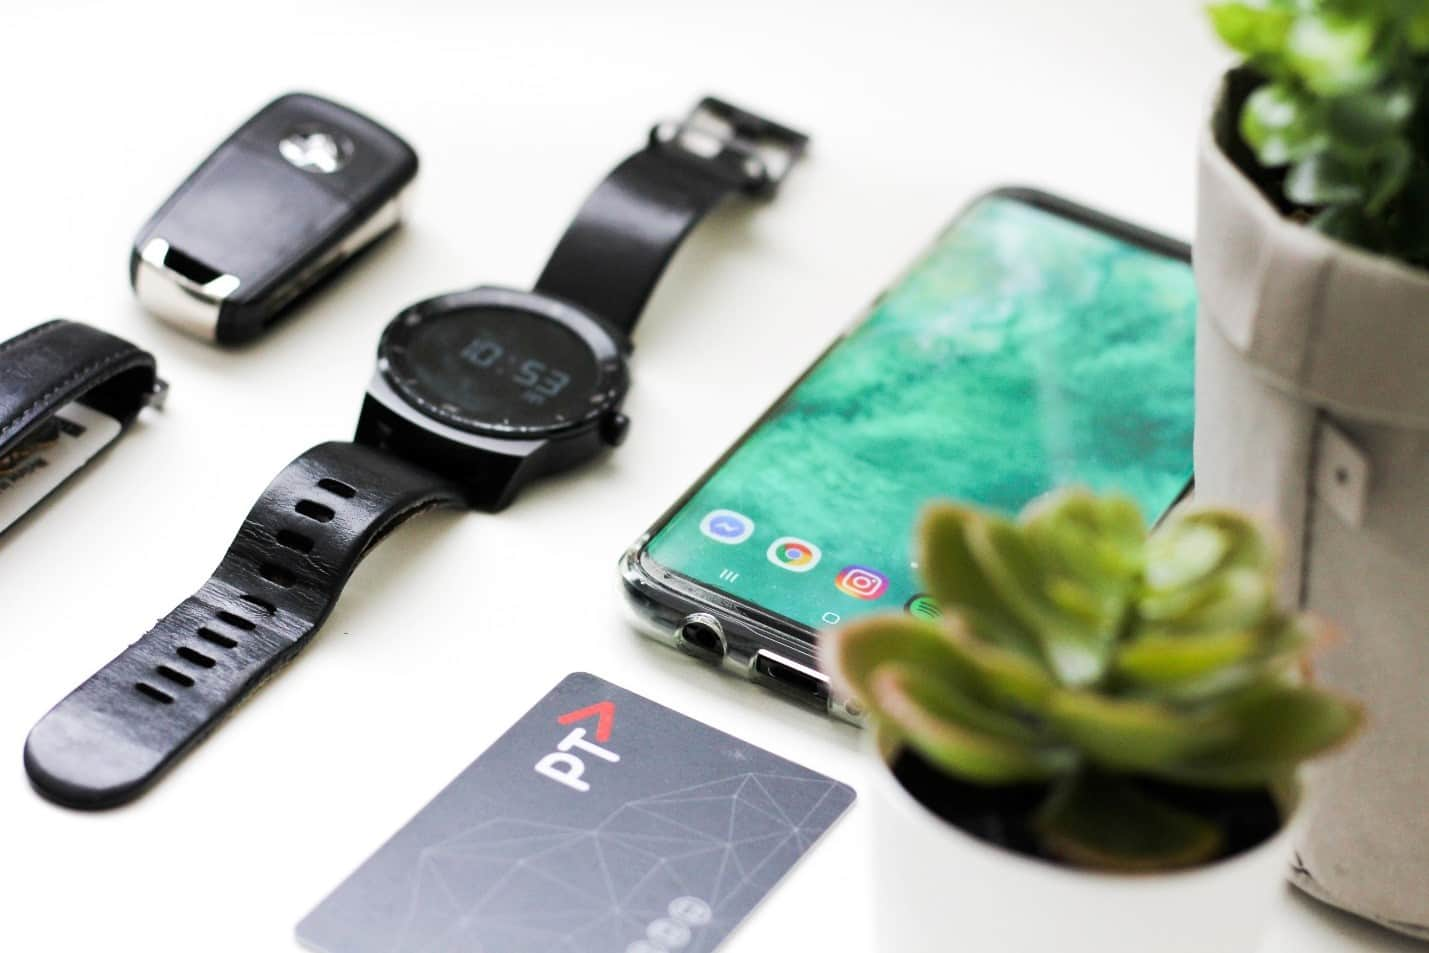 content/en-za/images/repository/isc/2020/9910/should-you-worry-about-smartwatch-security-1.jpg